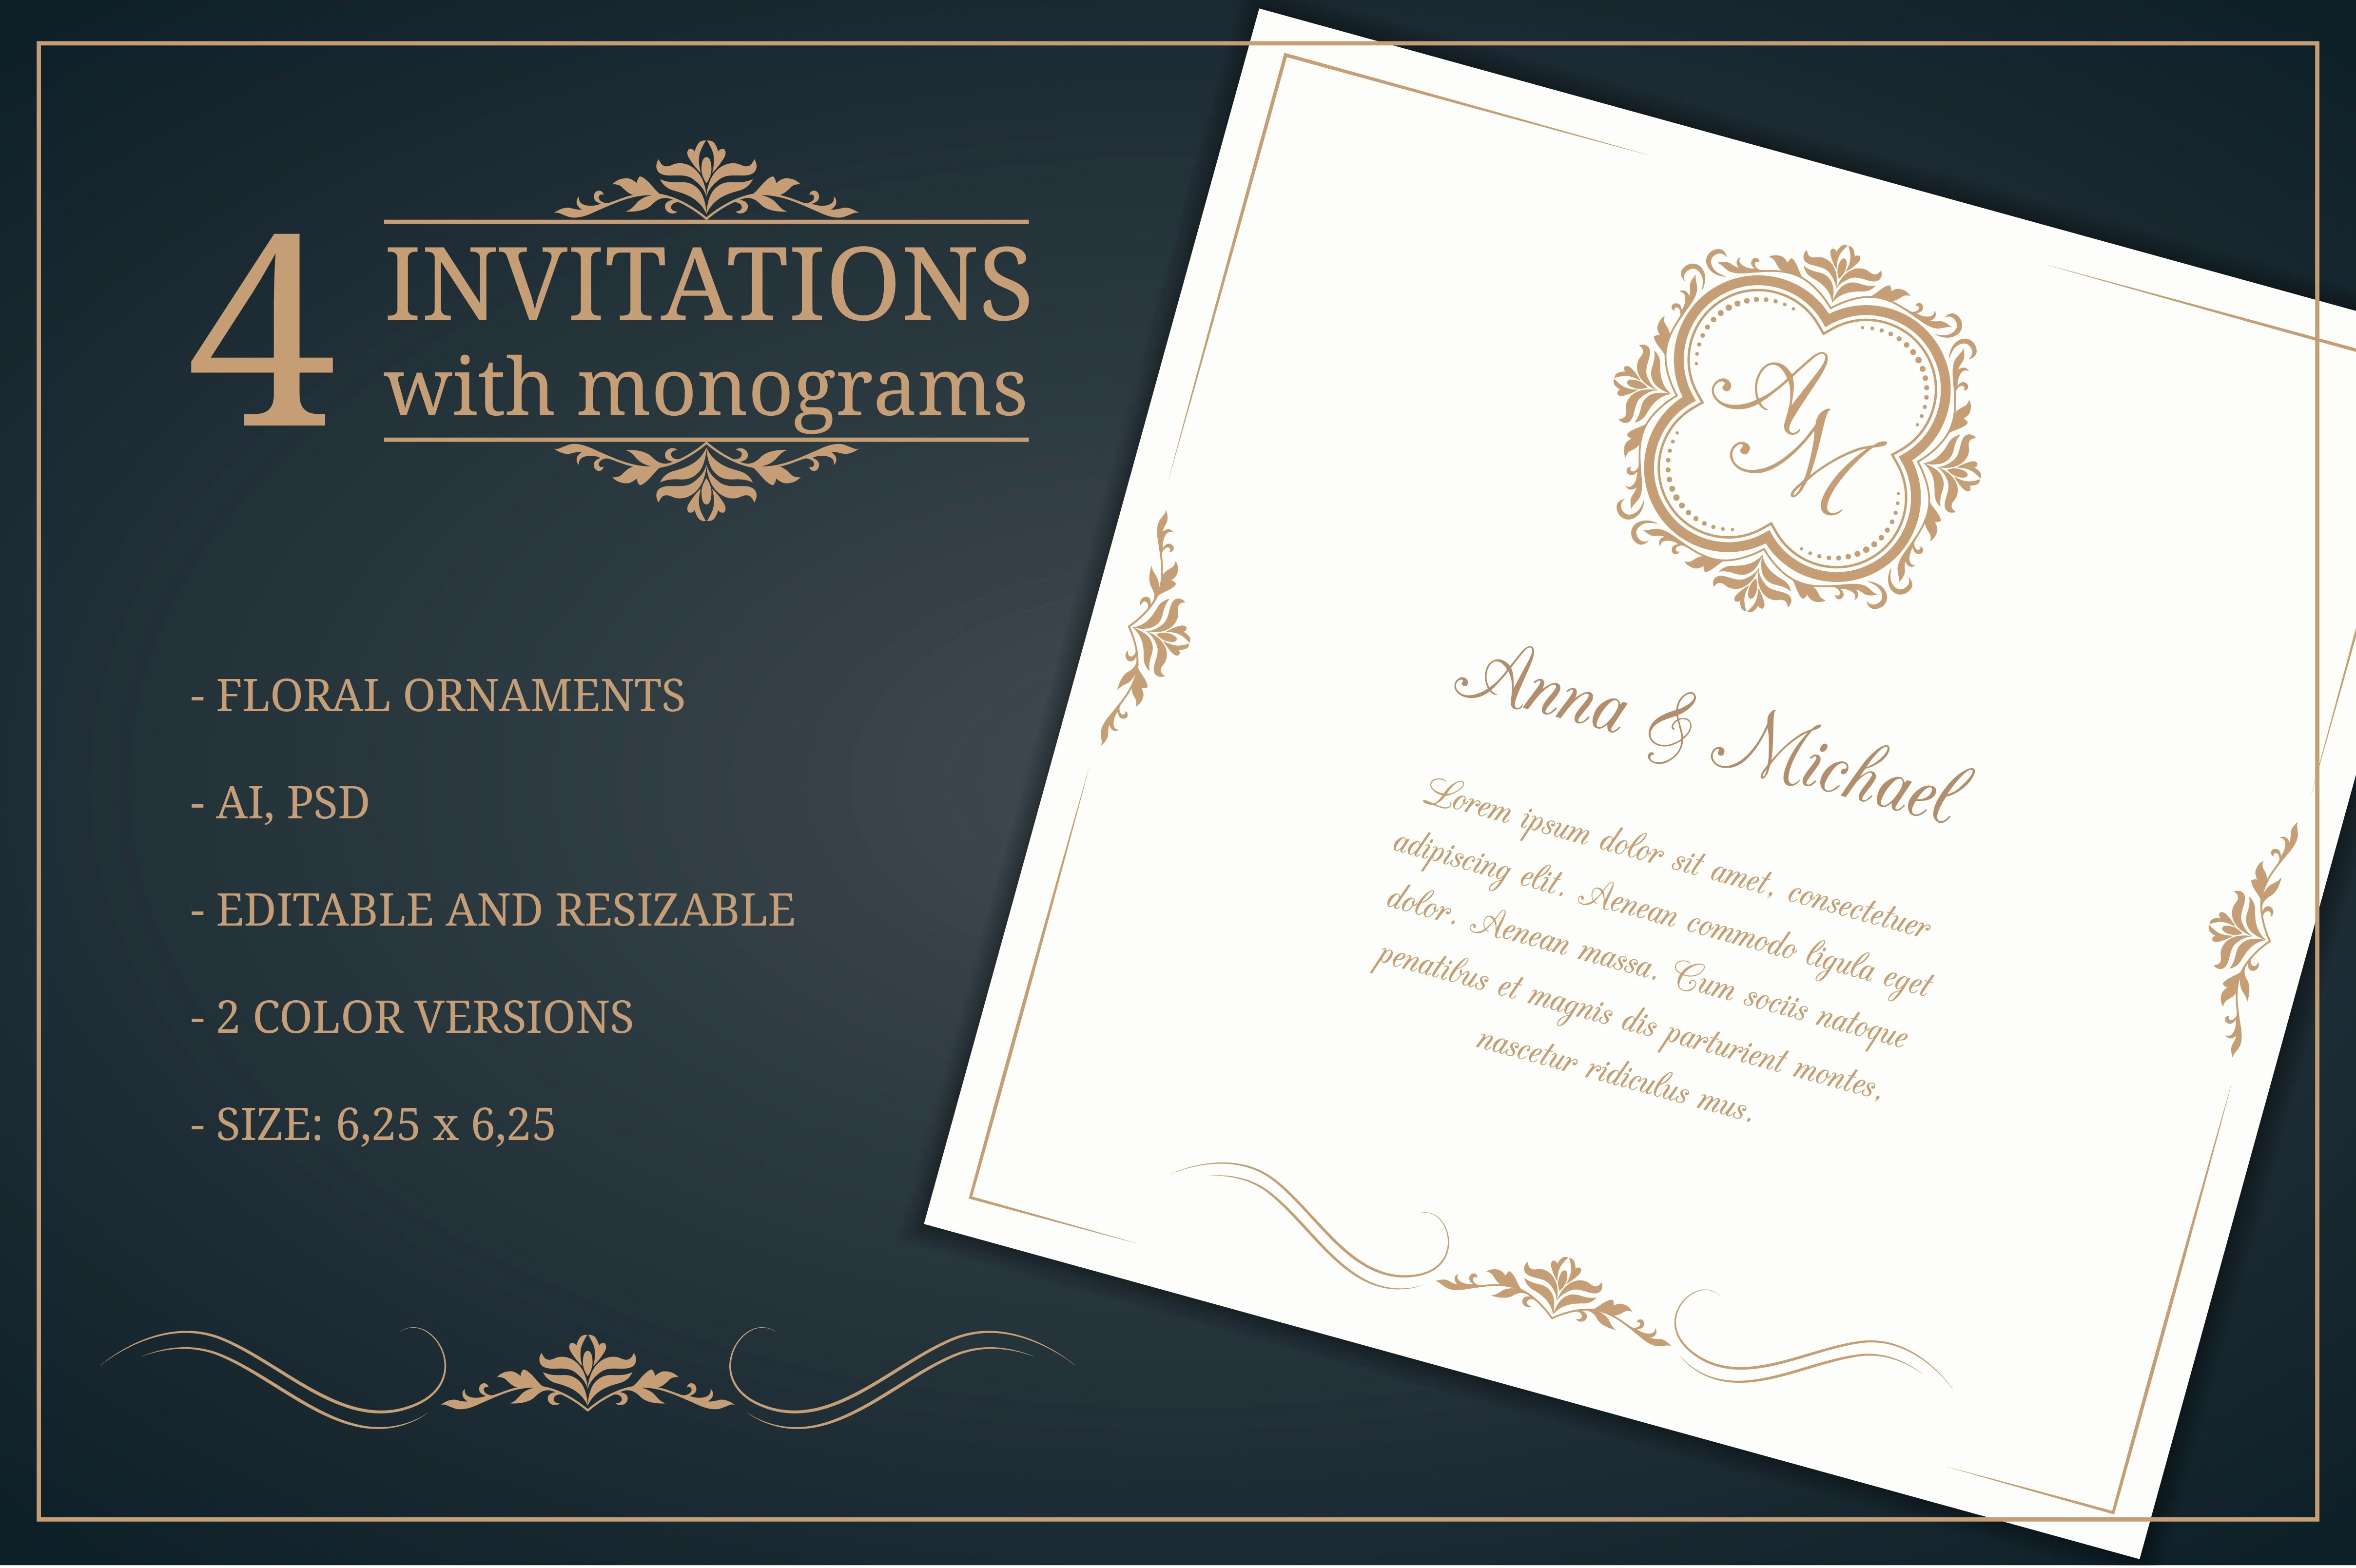 Wedding Invitation Templates Free Beautiful Wedding Invitations with Monograms Wedding Templates